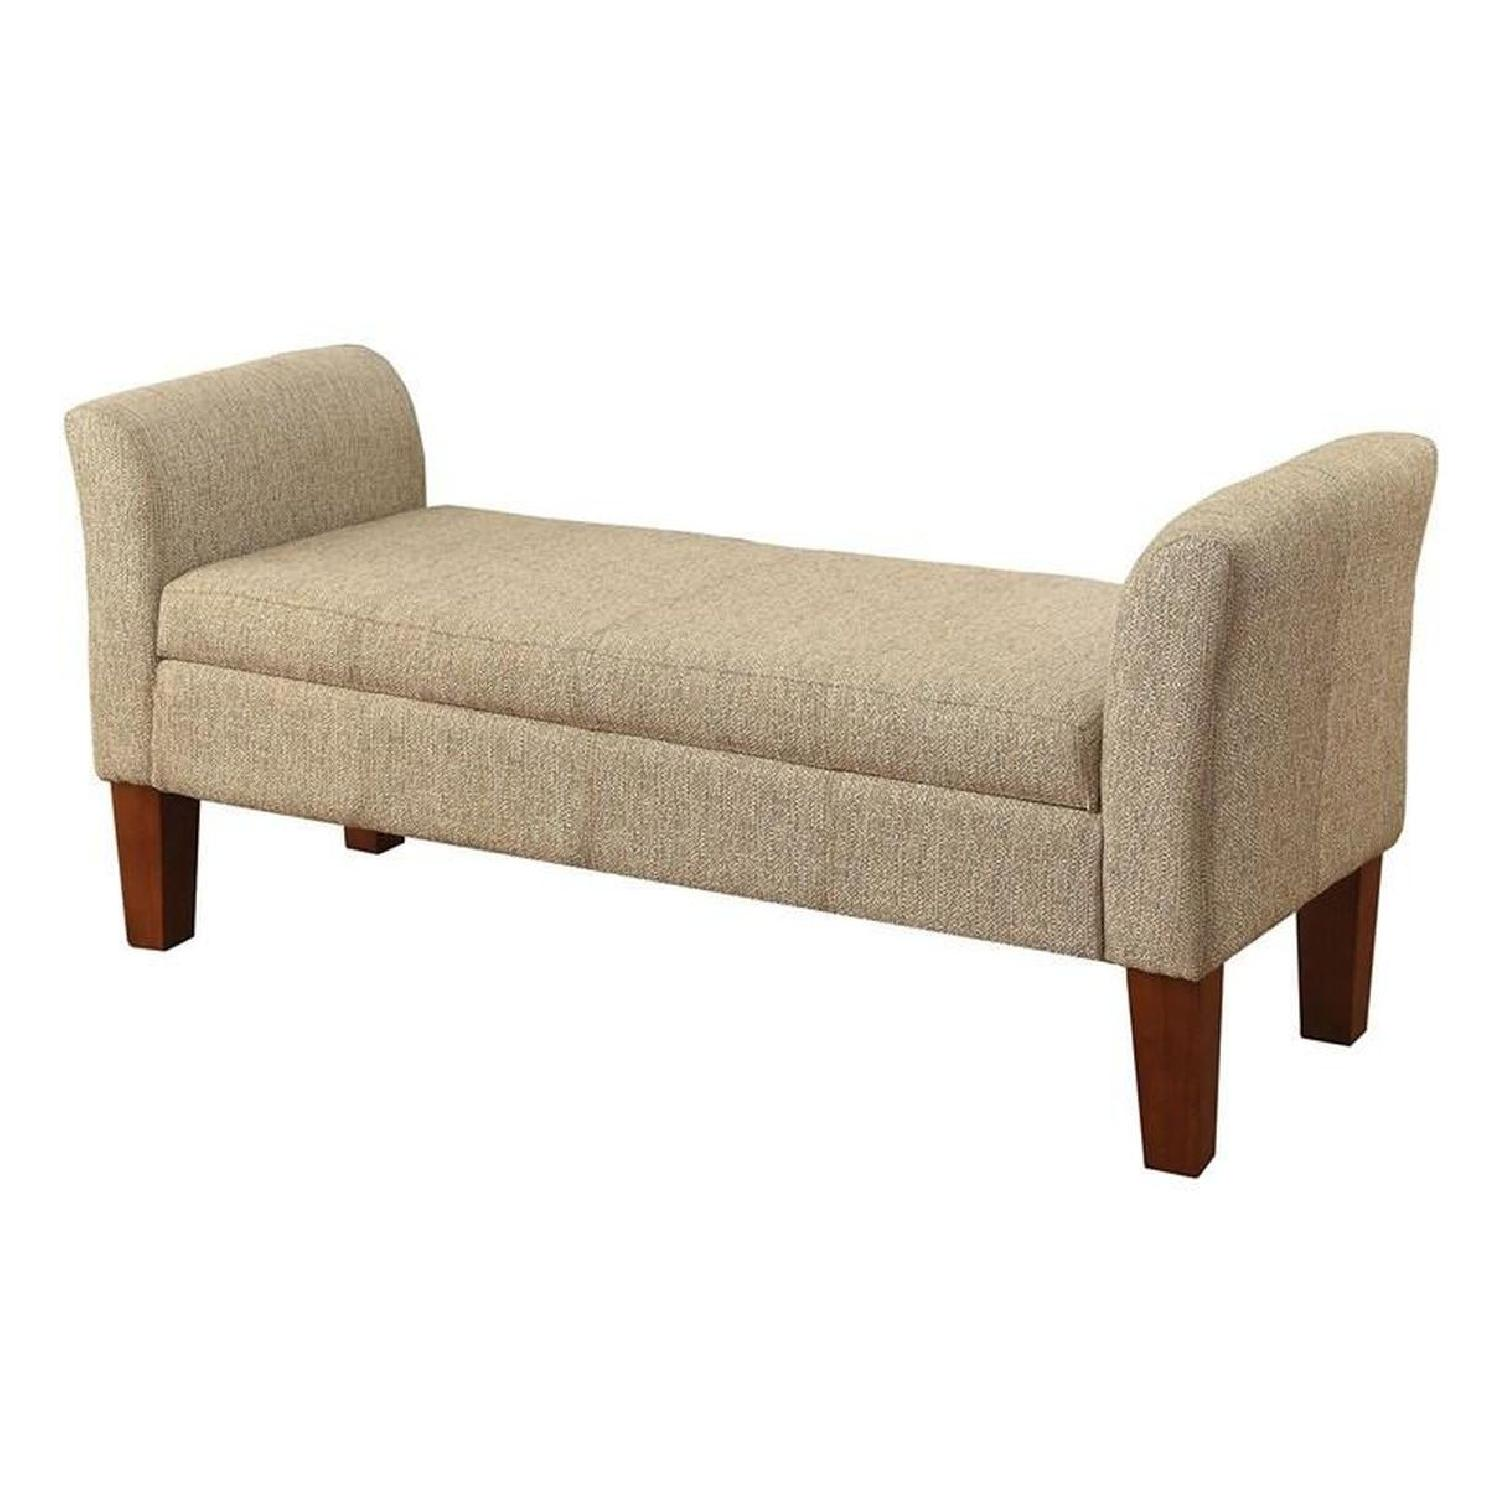 Storage Bench Upholstered In Tan Woven Fabric - image-1